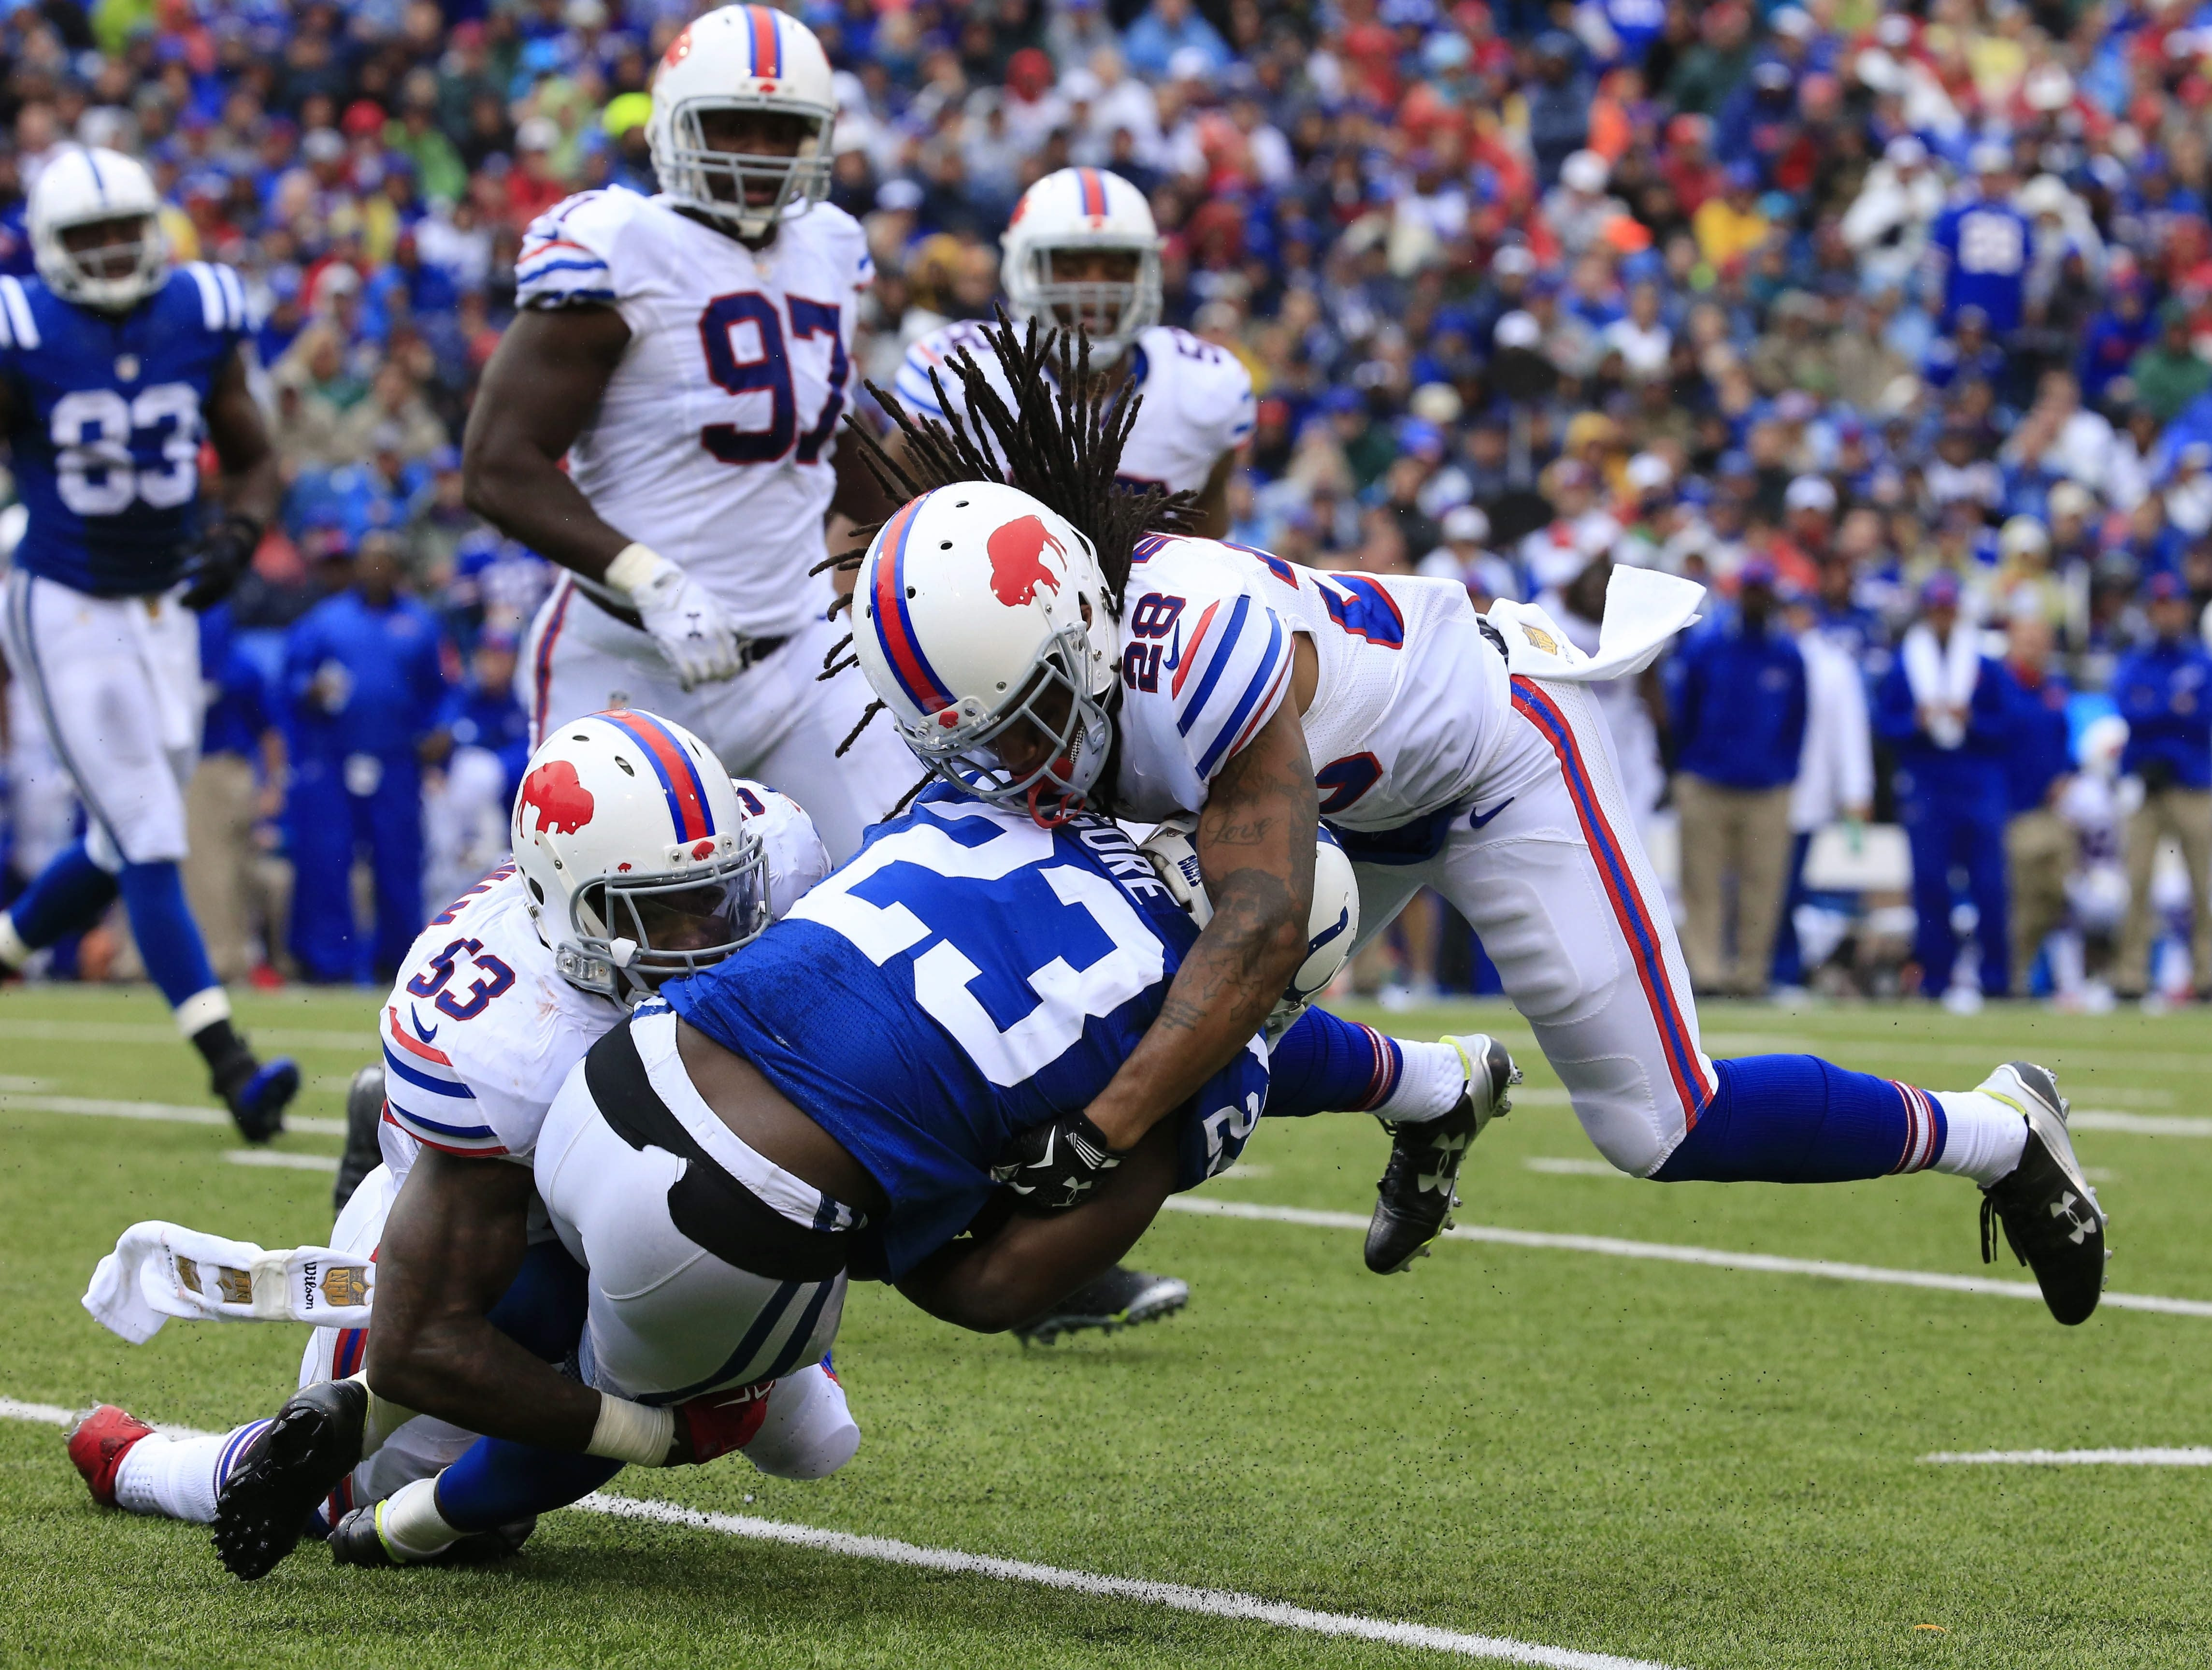 Bills linebacker Nigel Bradham (53) and Ronald Darby wrap up Colts running back Frank Gore during the fourth quarter at Ralph Wilson Stadium on Sunday.